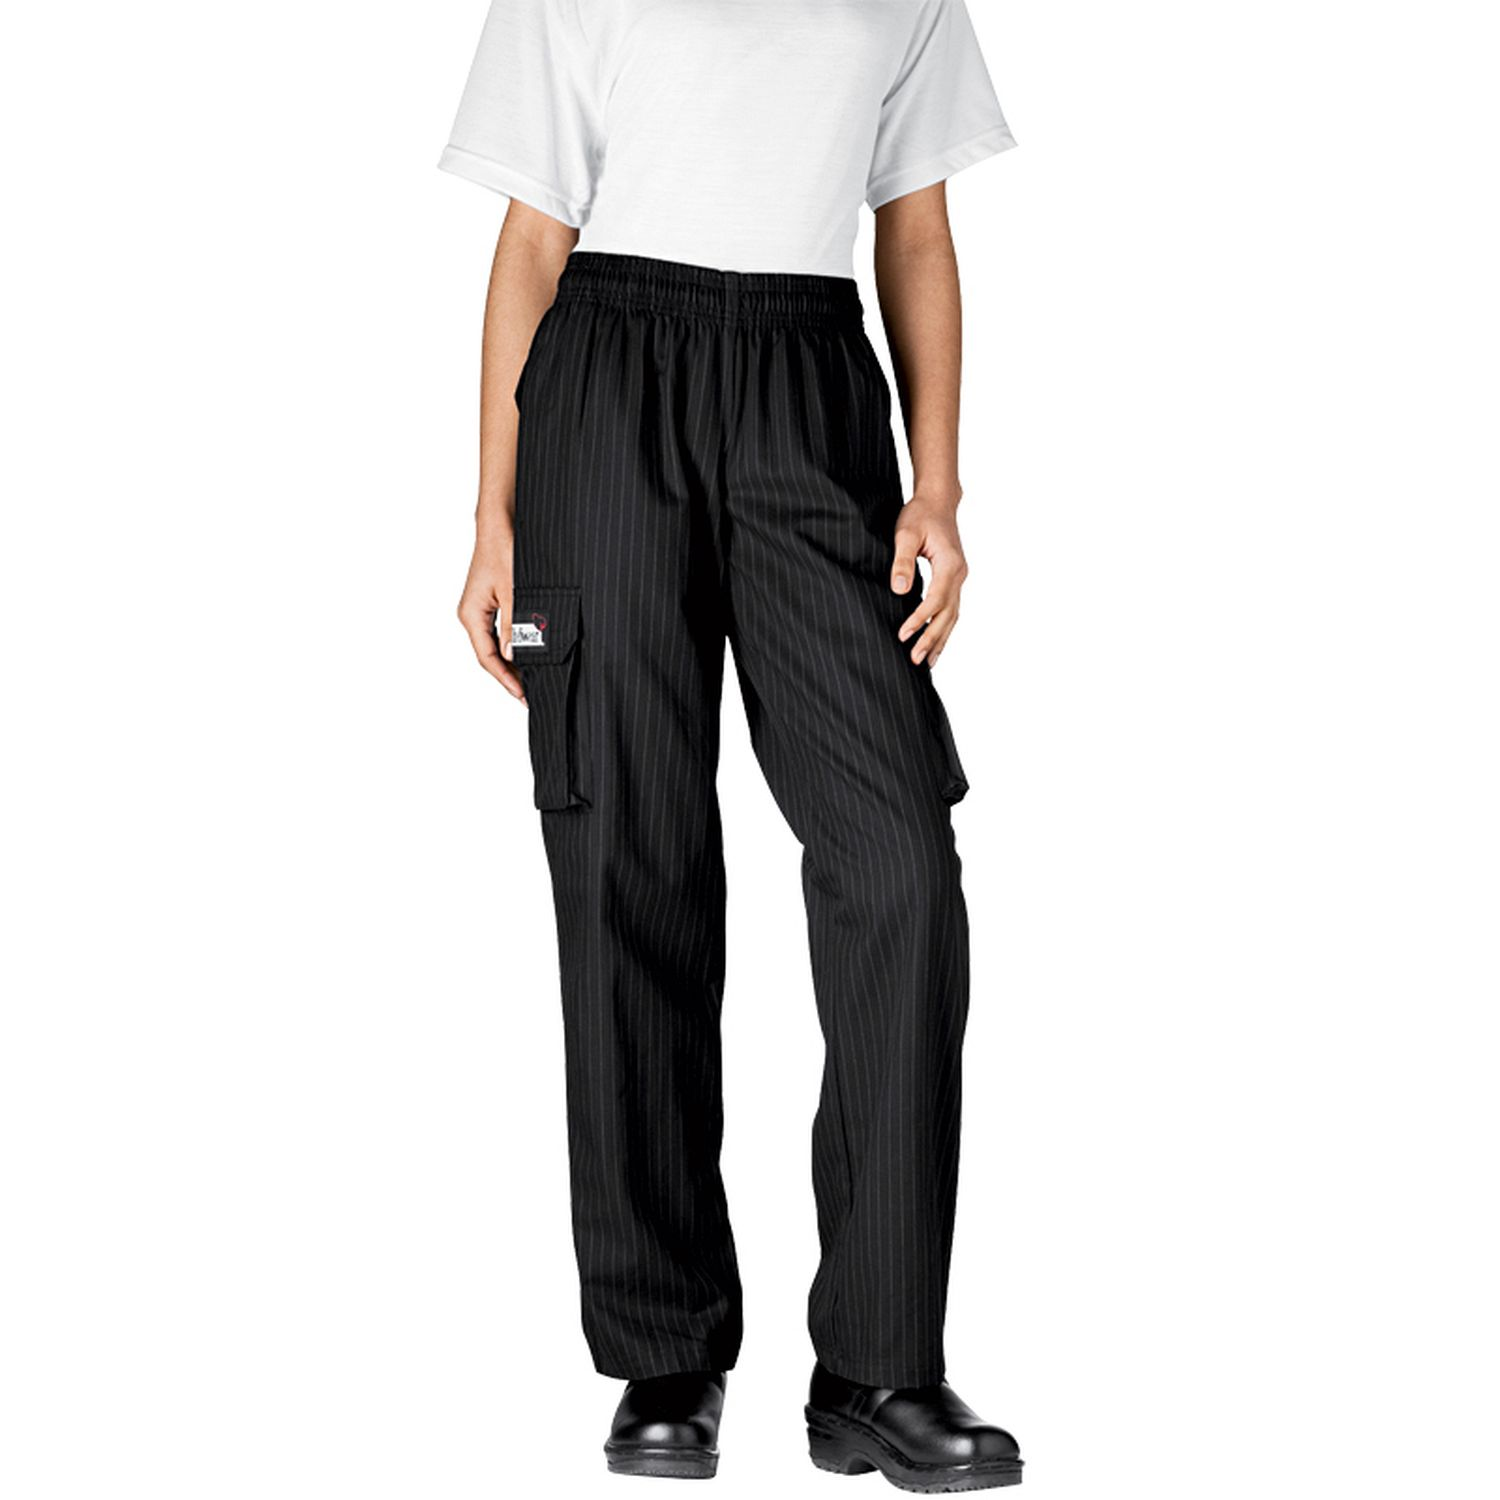 New SpiConnect 21100P Women39s Low Rise Drawstring Cargo Pant  Clothing